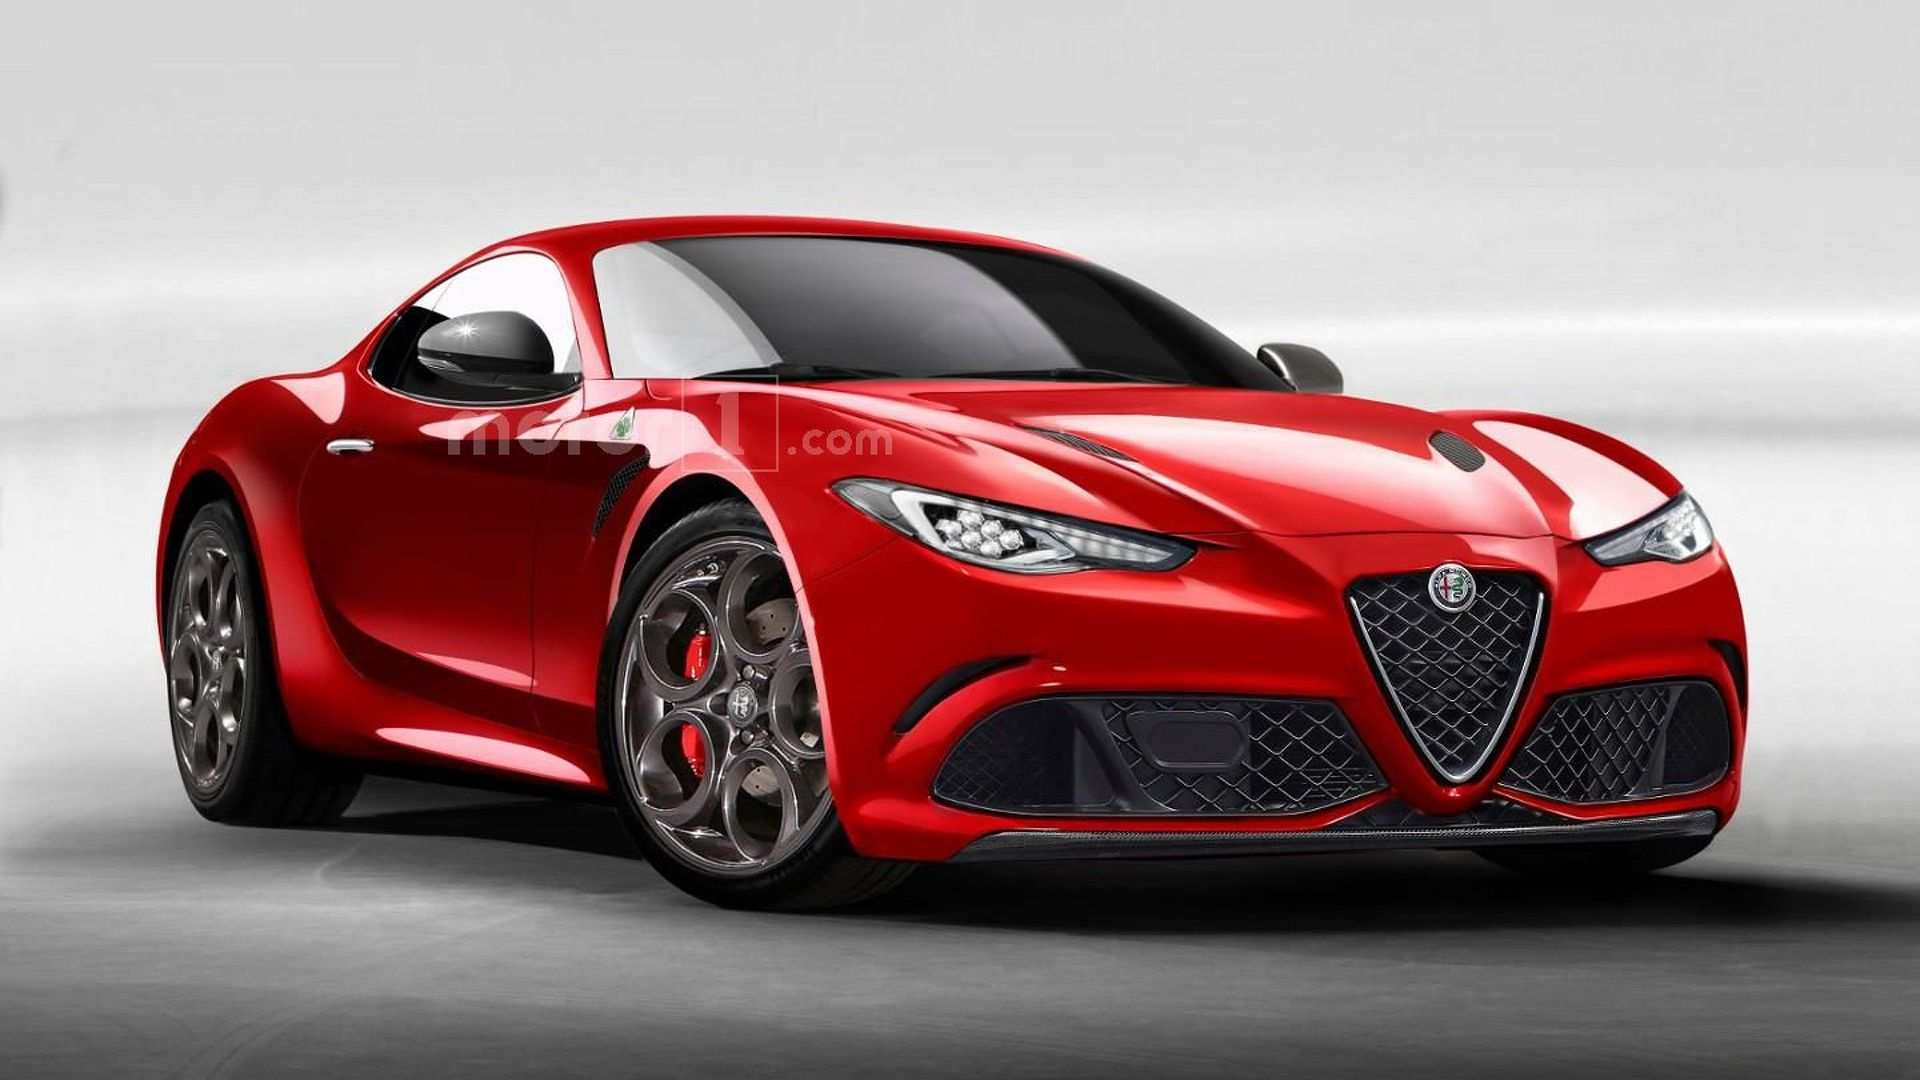 97 Concept of Alfa Gt 2020 Photos with Alfa Gt 2020